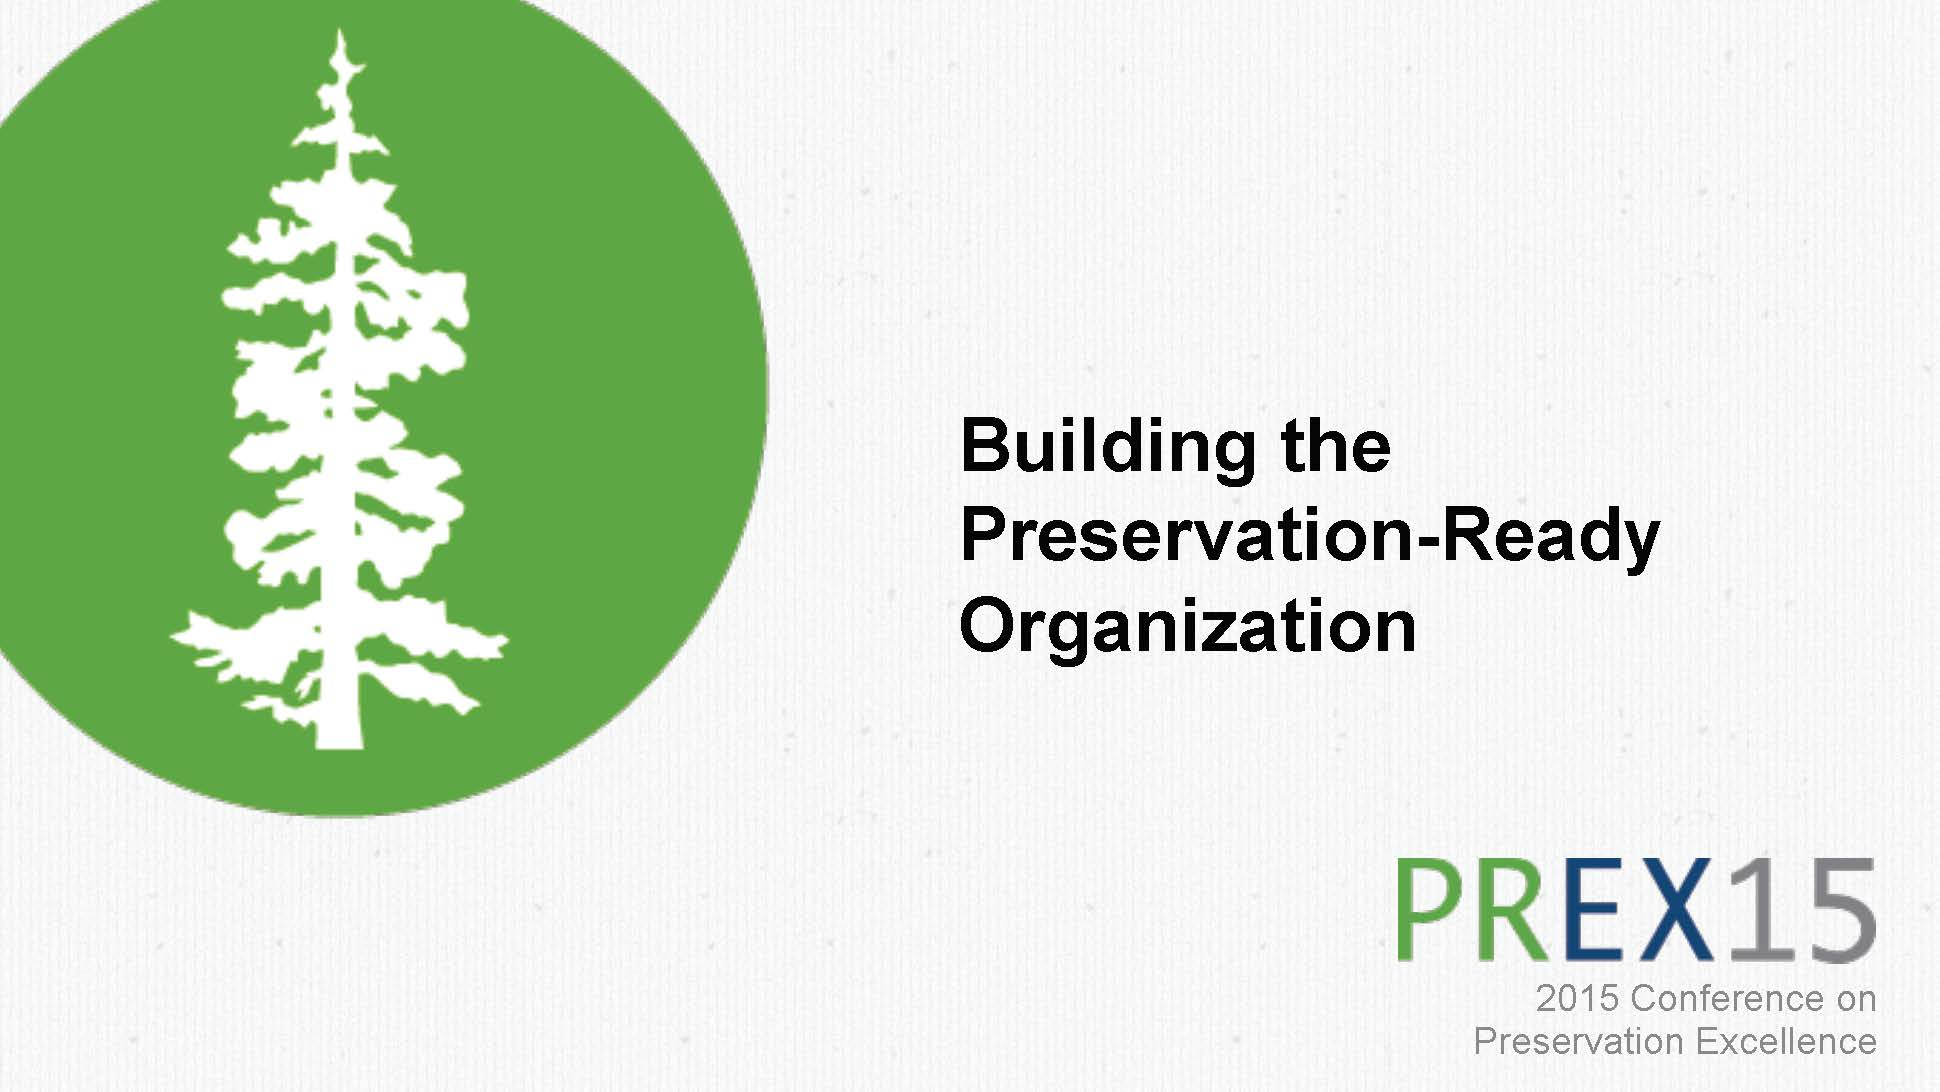 Building The Preservation-Ready Organization